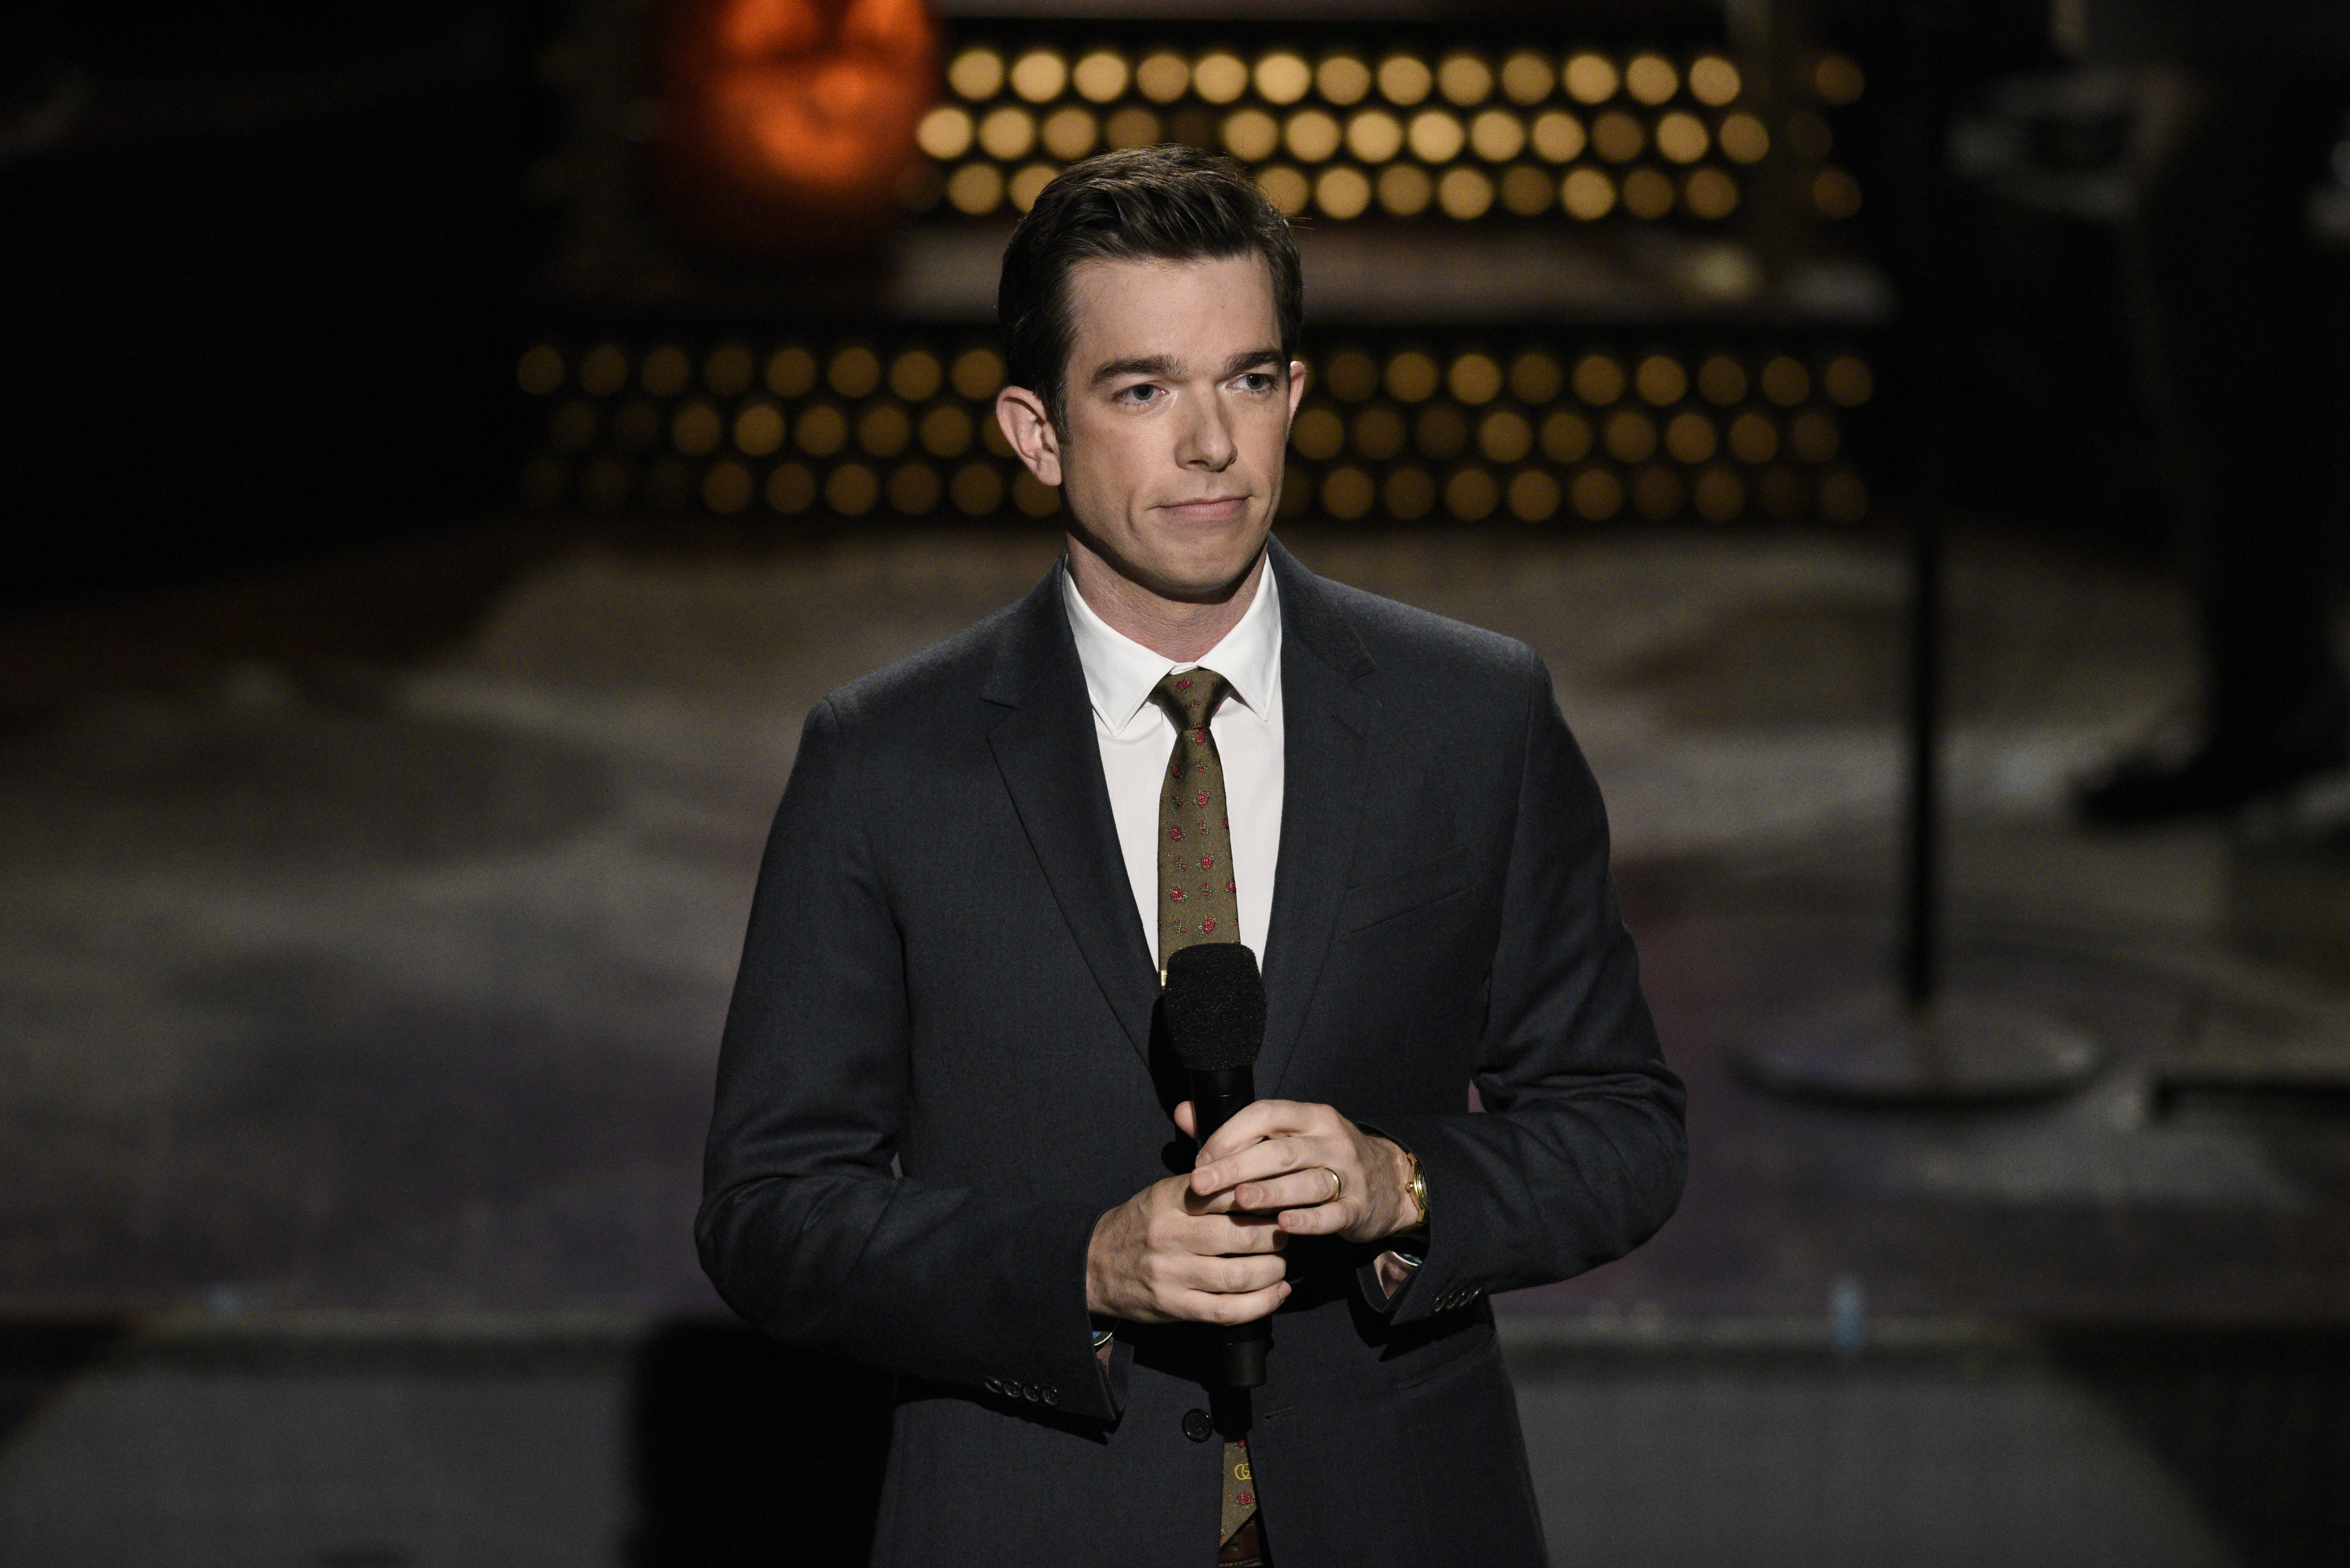 Secret Service Confirms John Mulaney Investigation Over 'SNL' Jokes - Rolling Stone